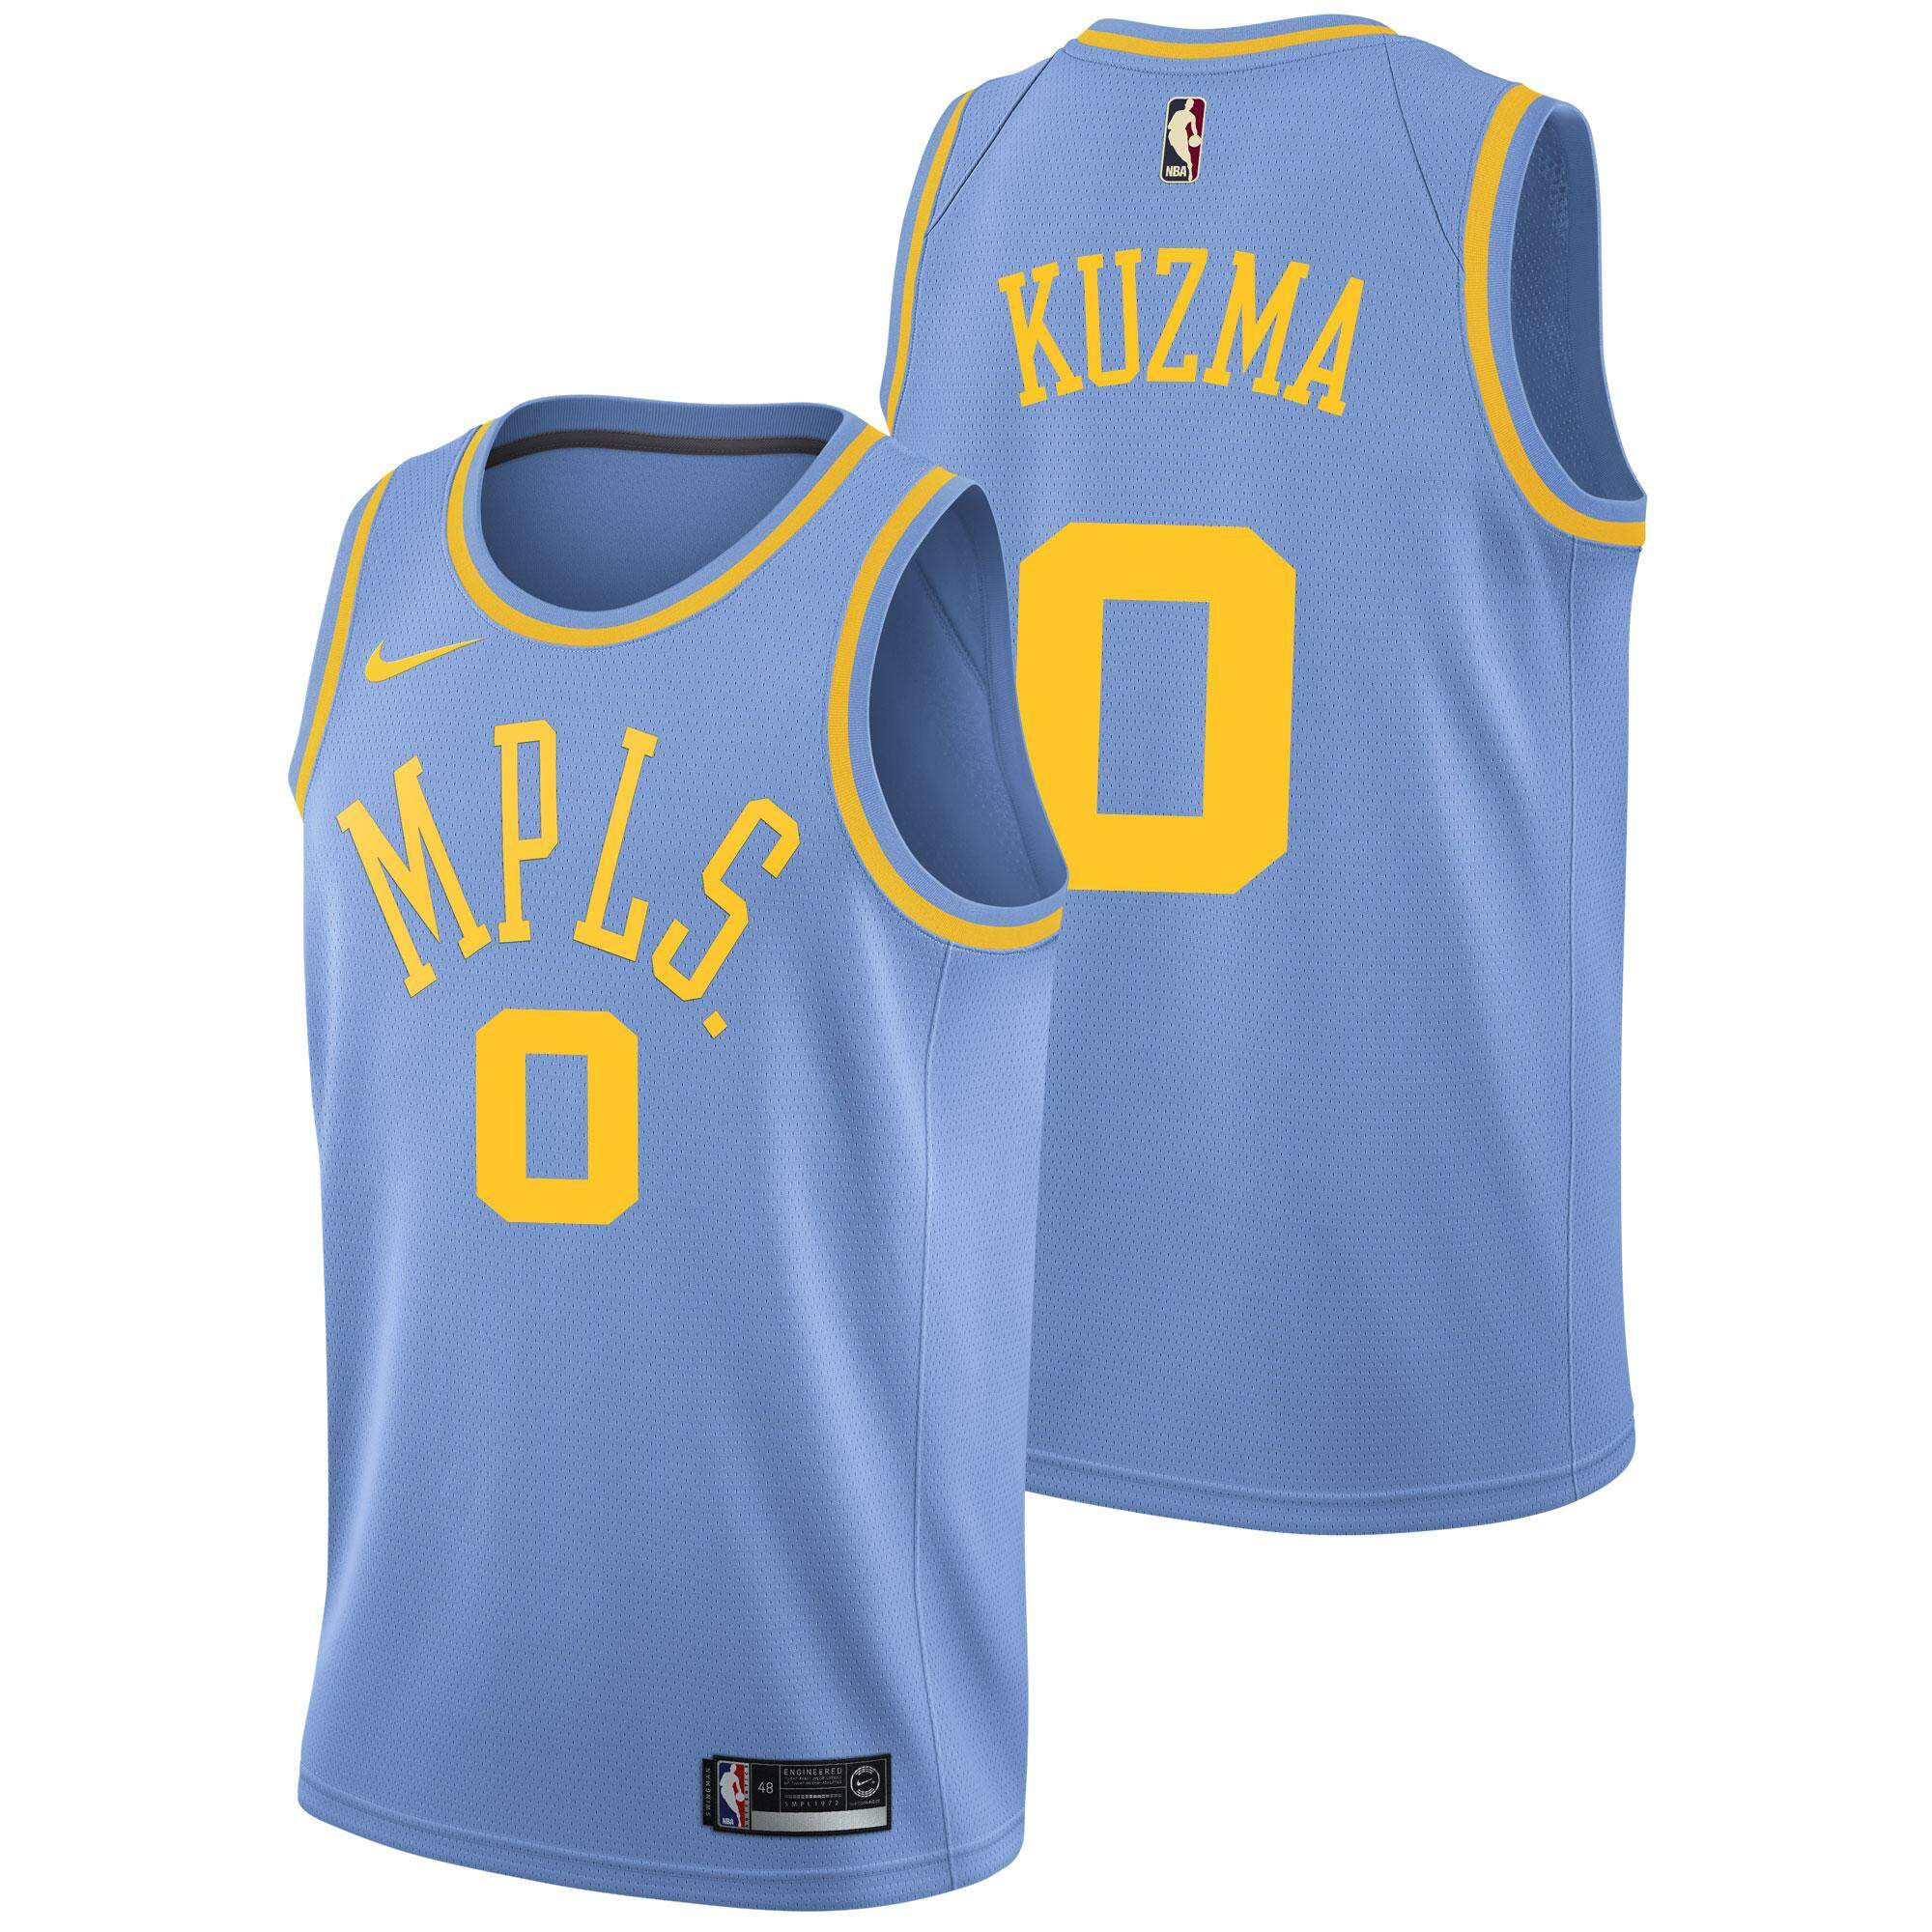 newest 165ce fa596 2019 Genuine NBA Swingman Jersey For Male Lakers Kyle Kuzma Num 0  Basketball Clothes Dry Fast Official Adult Size small White Association  Edition